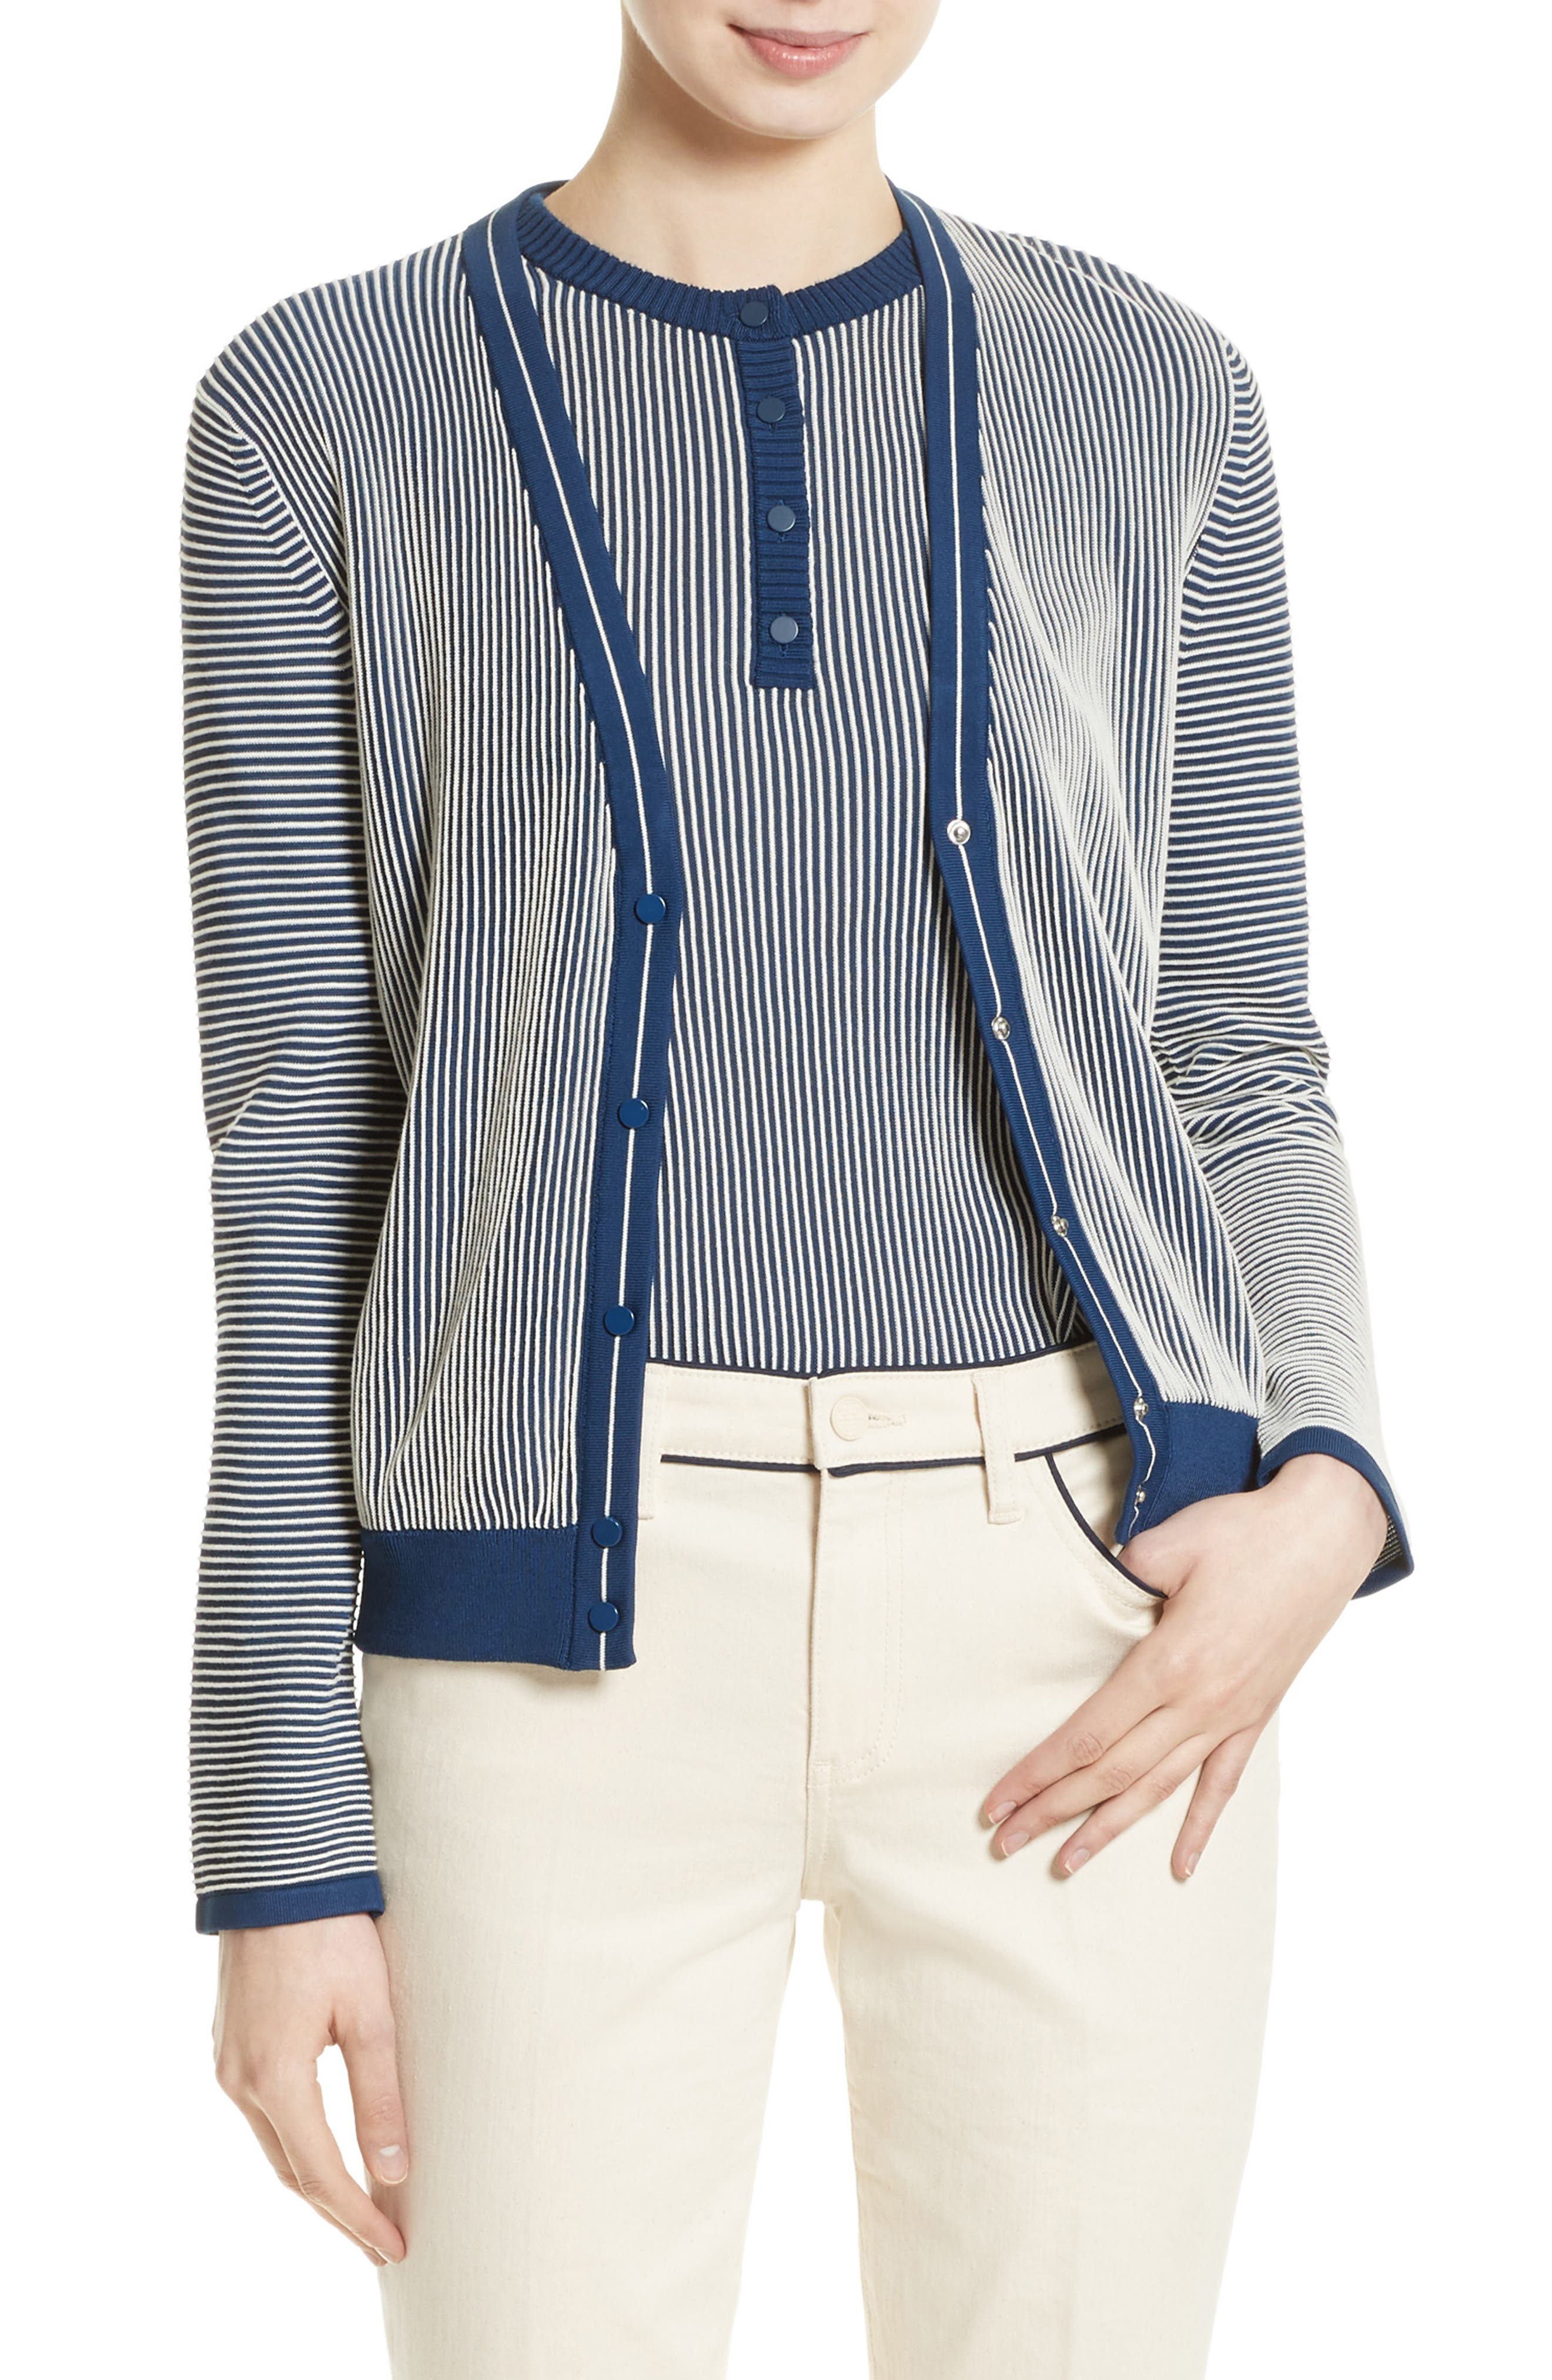 Tory Burch Kara Stripe Cardigan